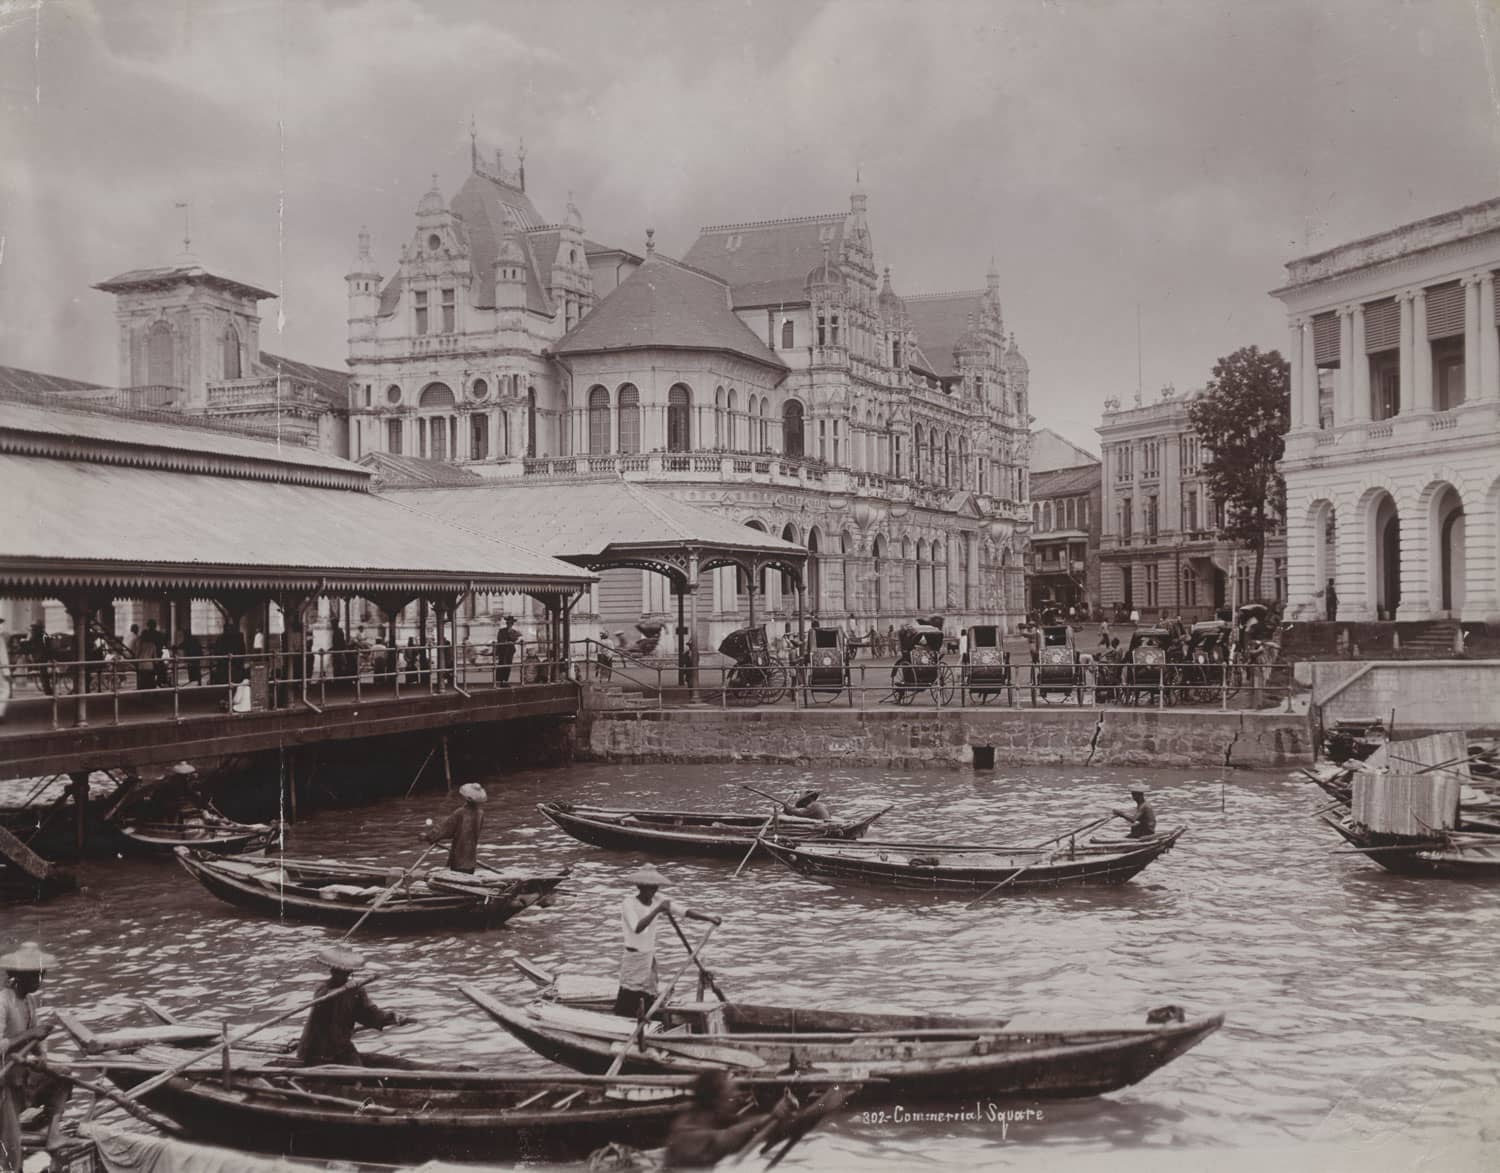 Commercial Square, 1900s